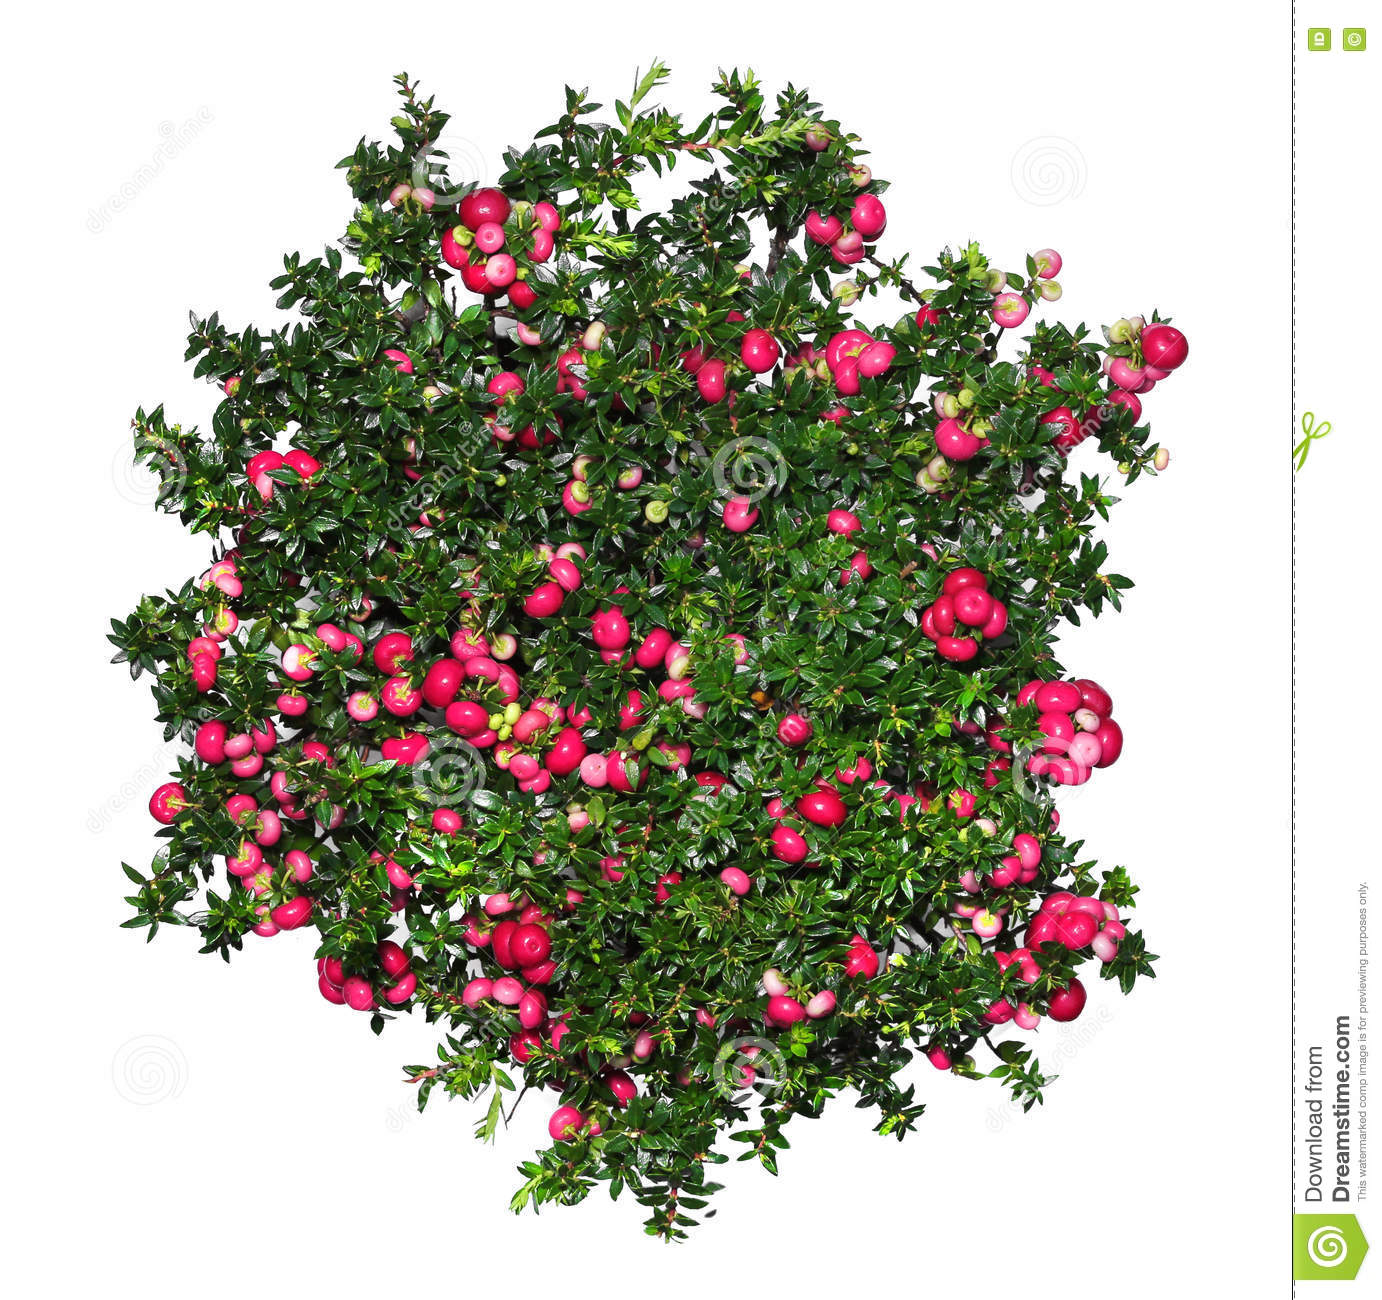 Evergreen Gaultheria Mucronata Plant With Red Berries Stock Photo.